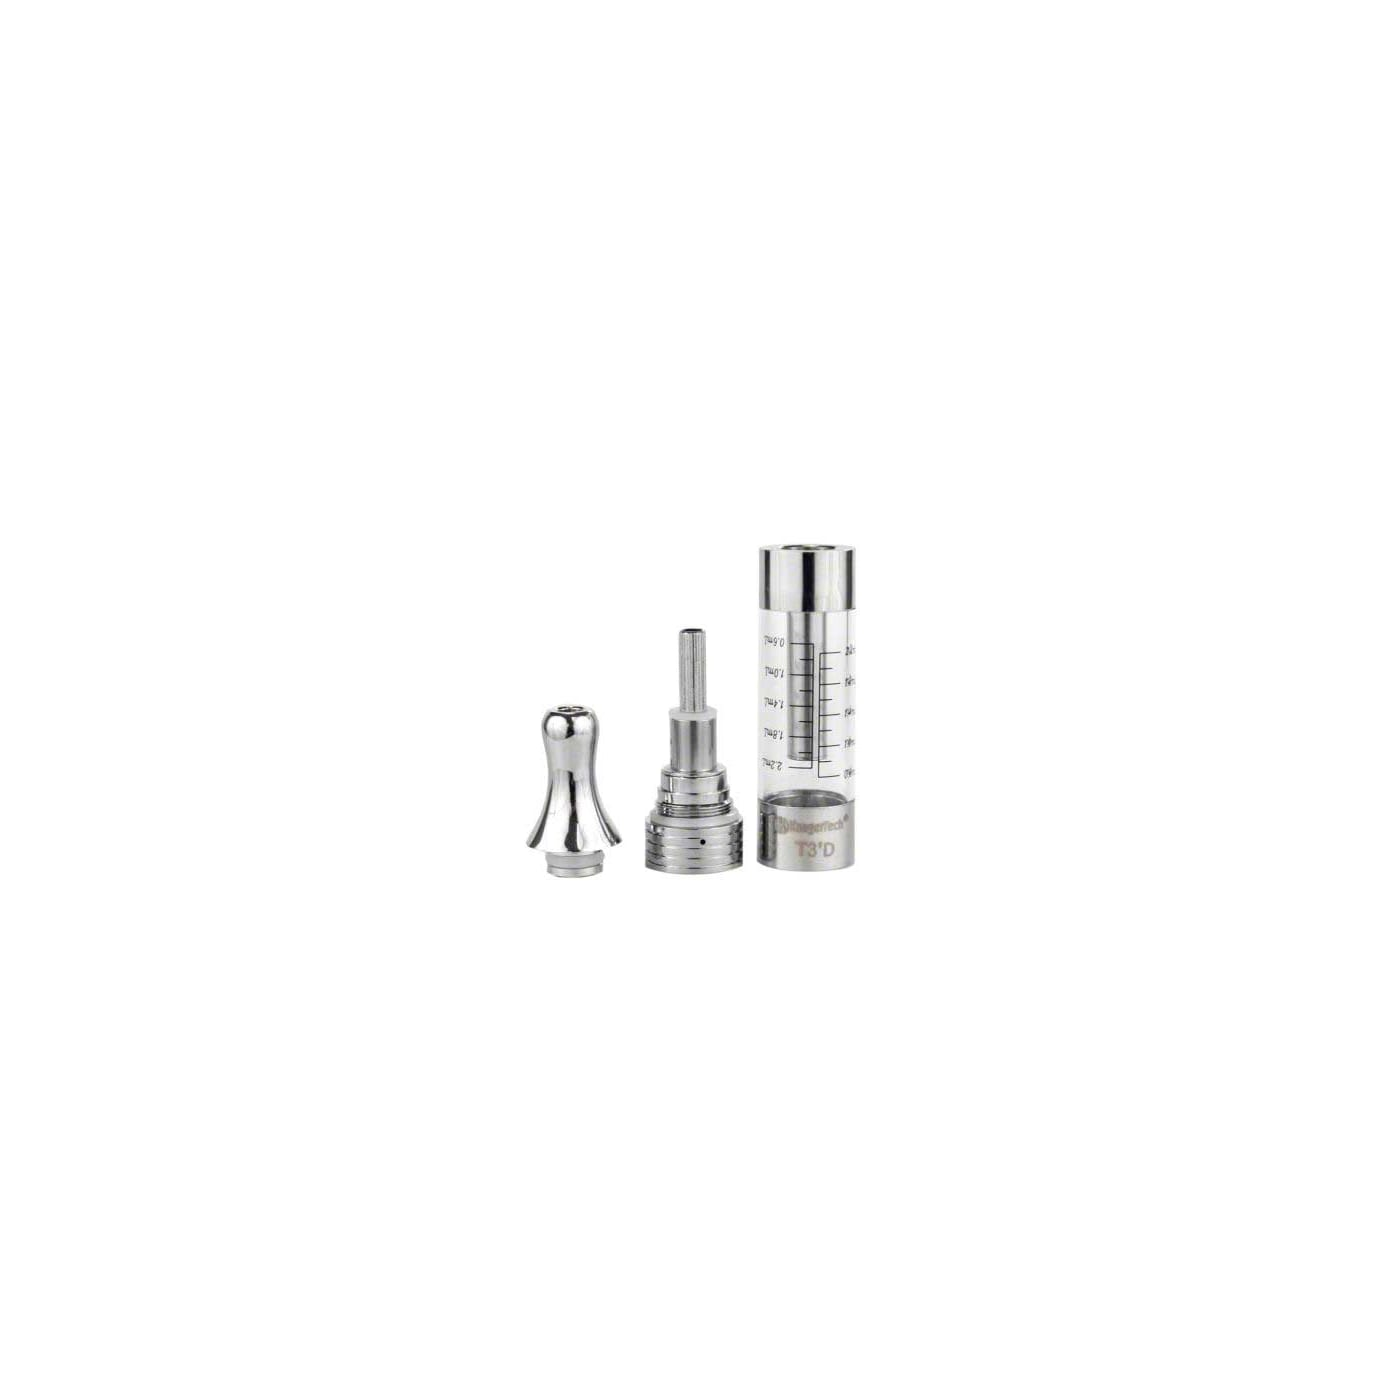 Kanger T3D Clearomizer Tank 1 5 ohm